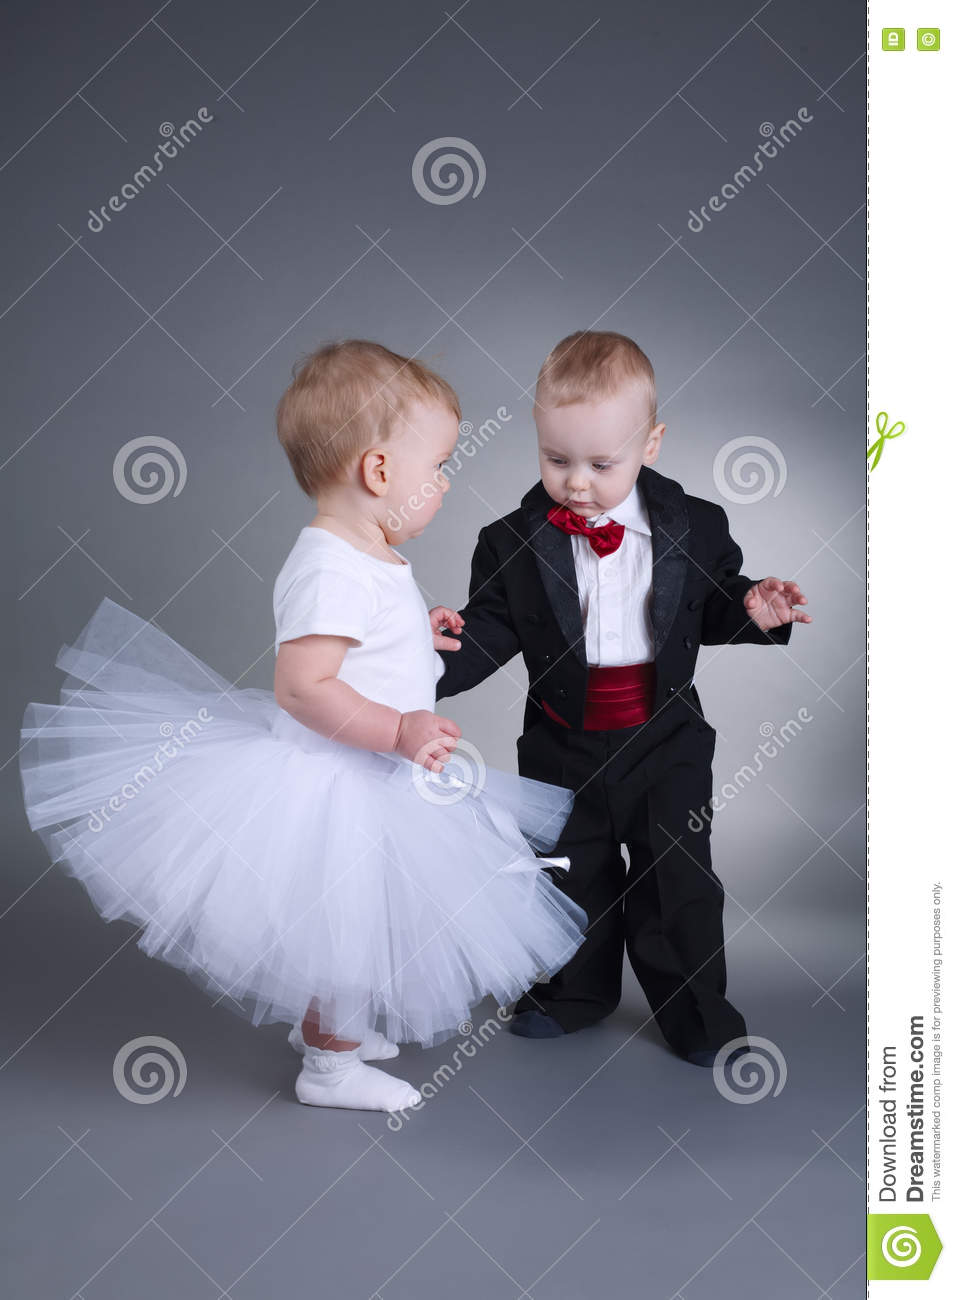 cute boy and girl in wedding dress stock photo - image of playing